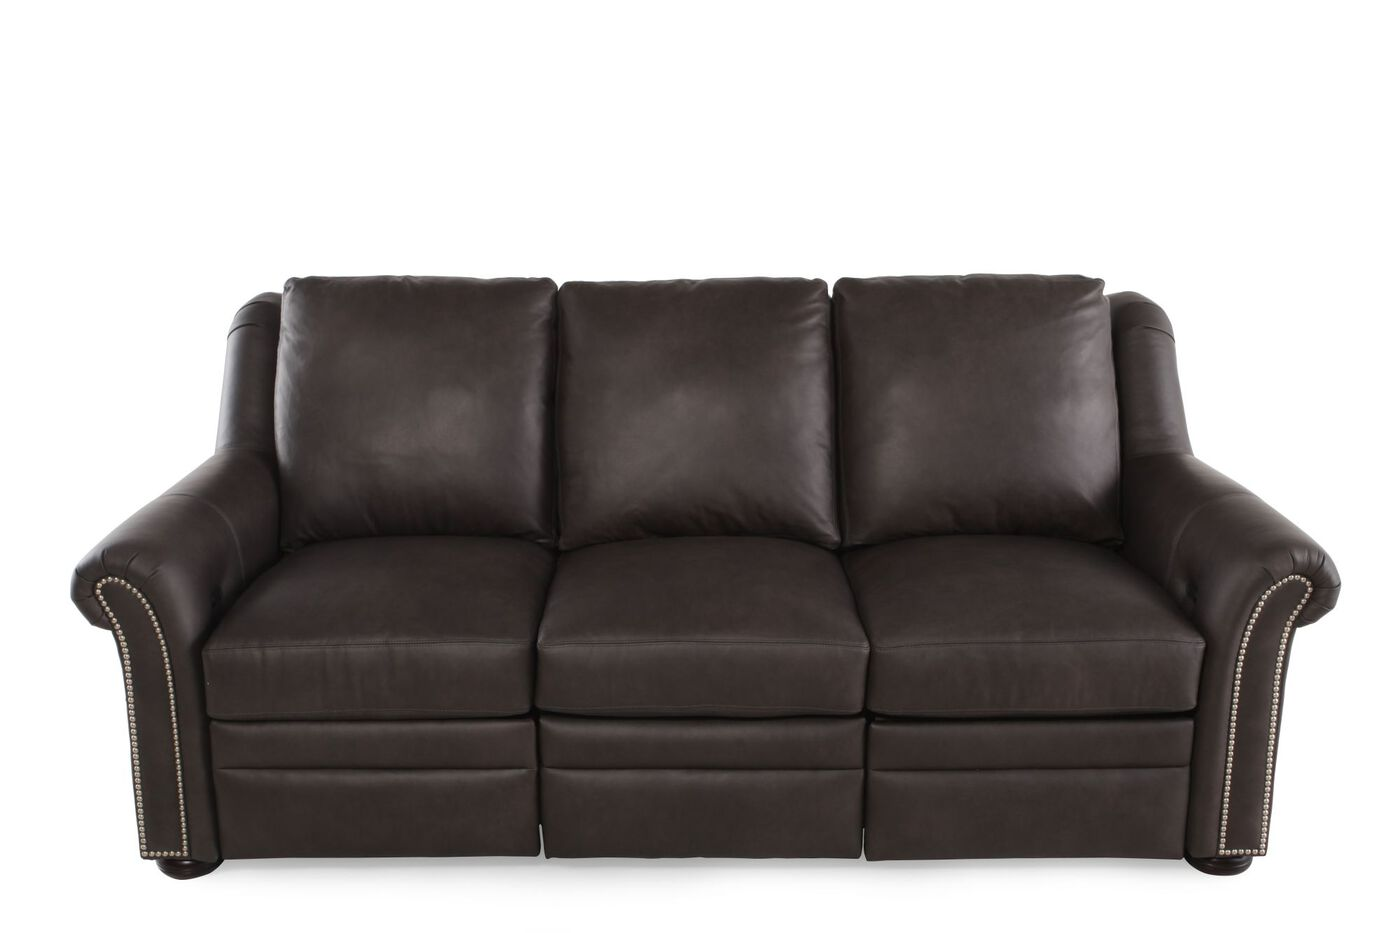 Bradington young luxury motion newman reclining sofa mathis brothers furniture - Sofa reclinable ...